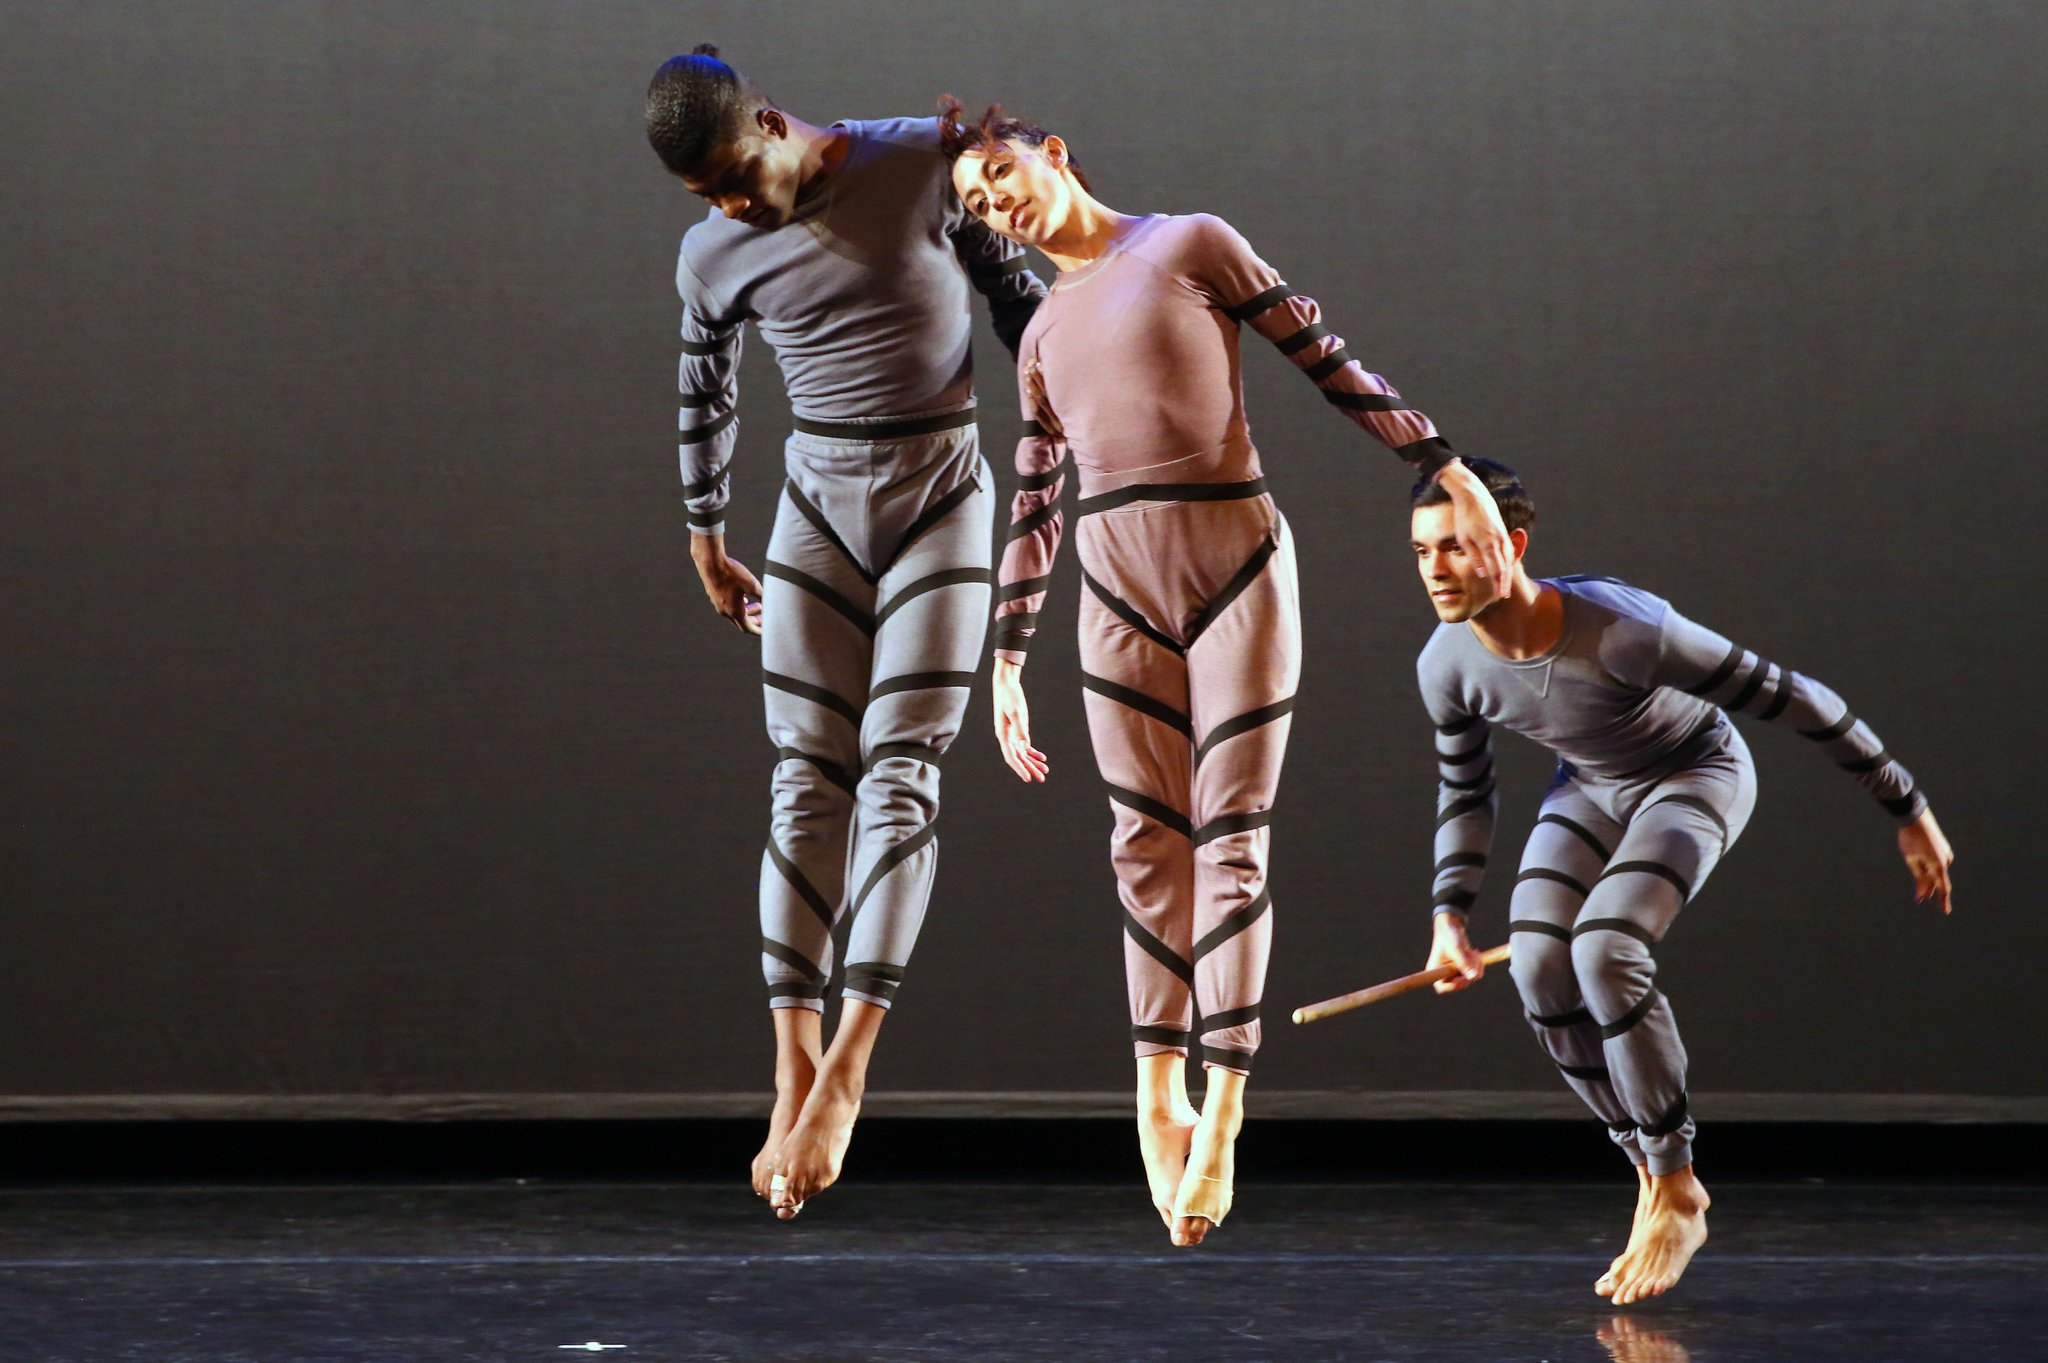 Review: Taking a Chance on Merce Cunningham